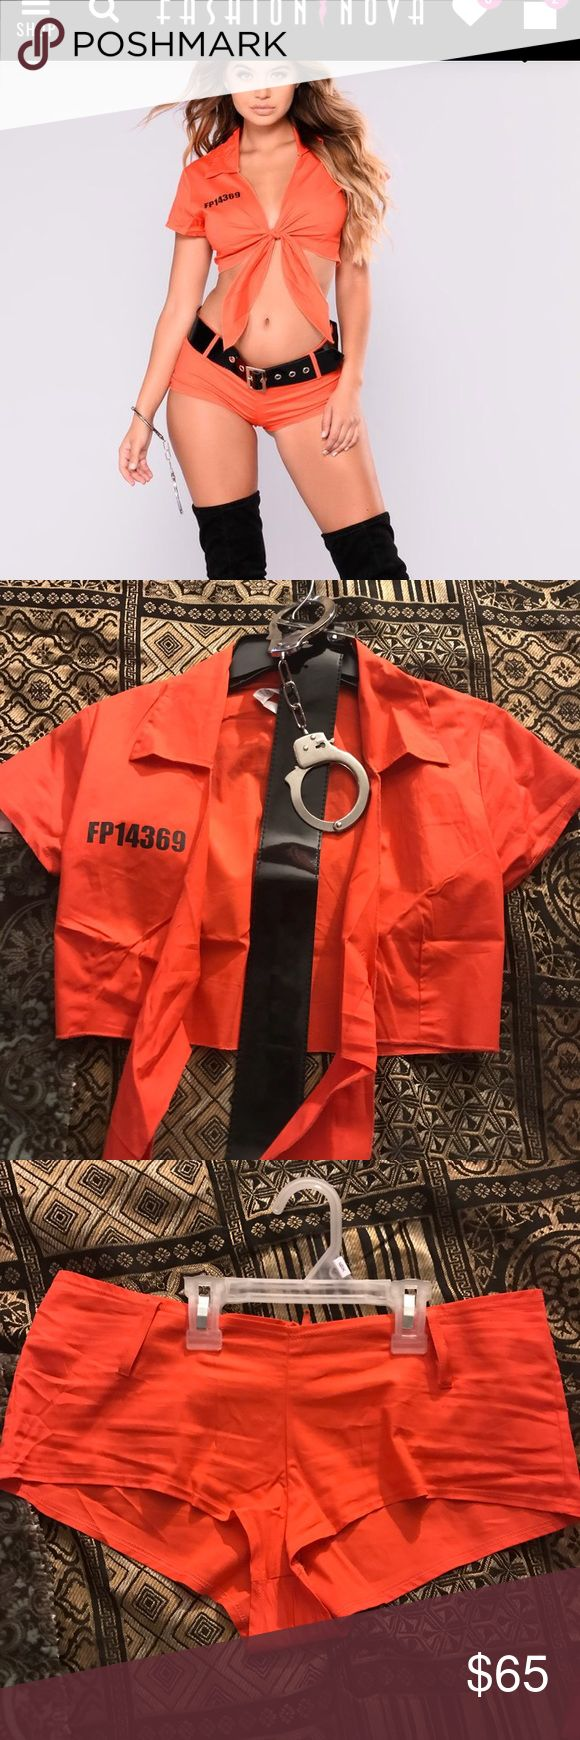 Fashion Nova Inmate Costume Inmate costume size S/M price firm. Brand New they sent me 2. Comes with Top,Shorts,belt and hancuffs with keys. the cuffs are metal and the belt is thick. Not cheap material. was 69.99 on website plus shipping Fashion Nova Other